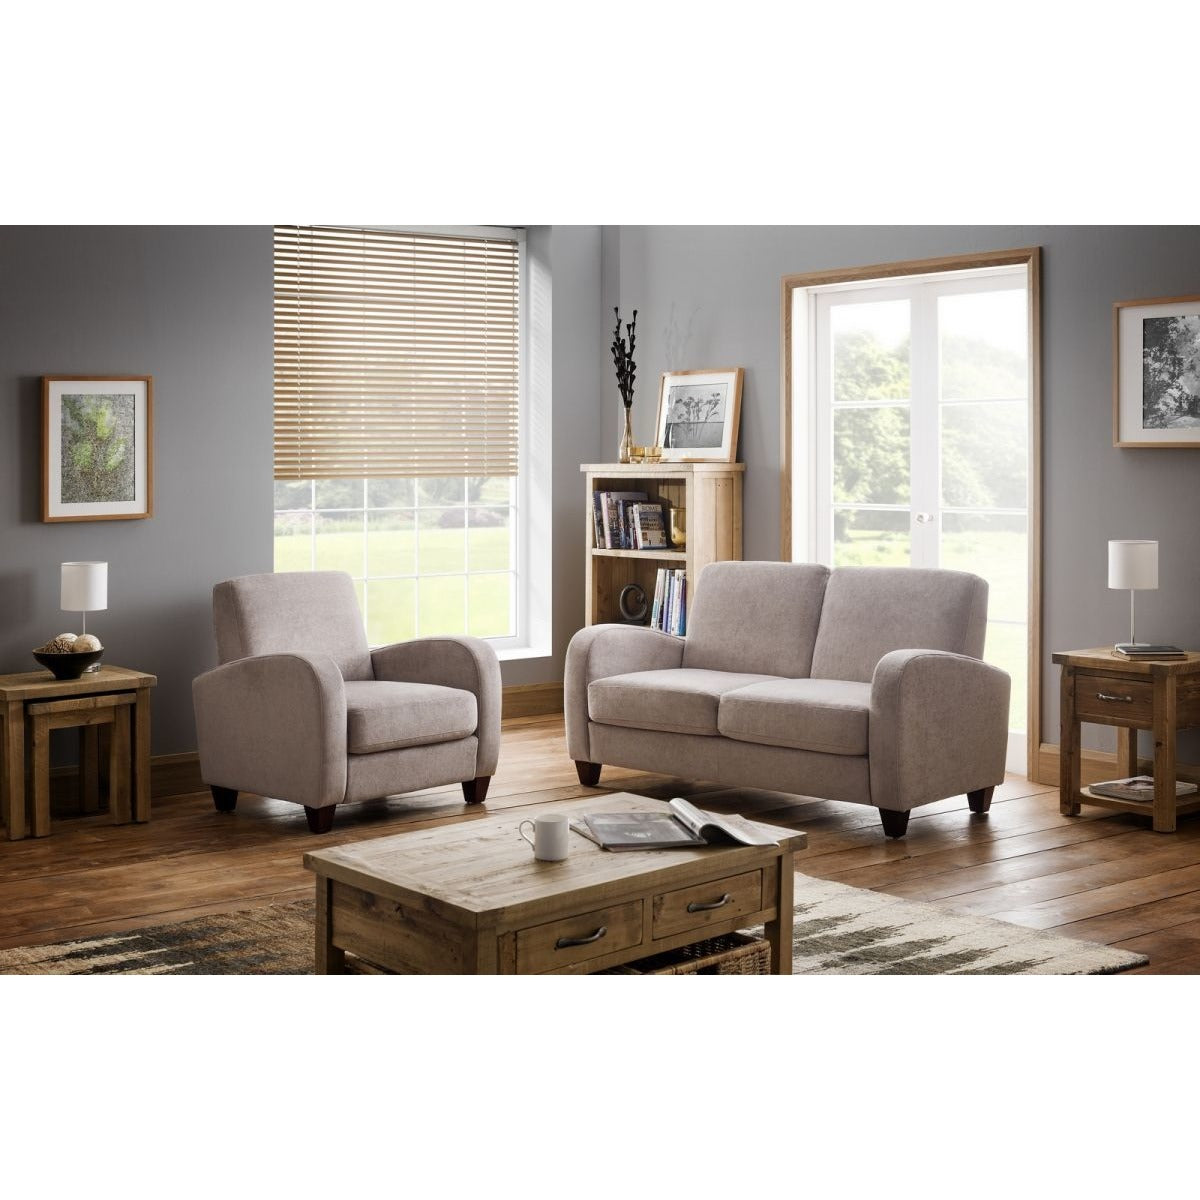 Vivo 2 Seater Sofa in Mink Chenille - Perfectly Home Interiors